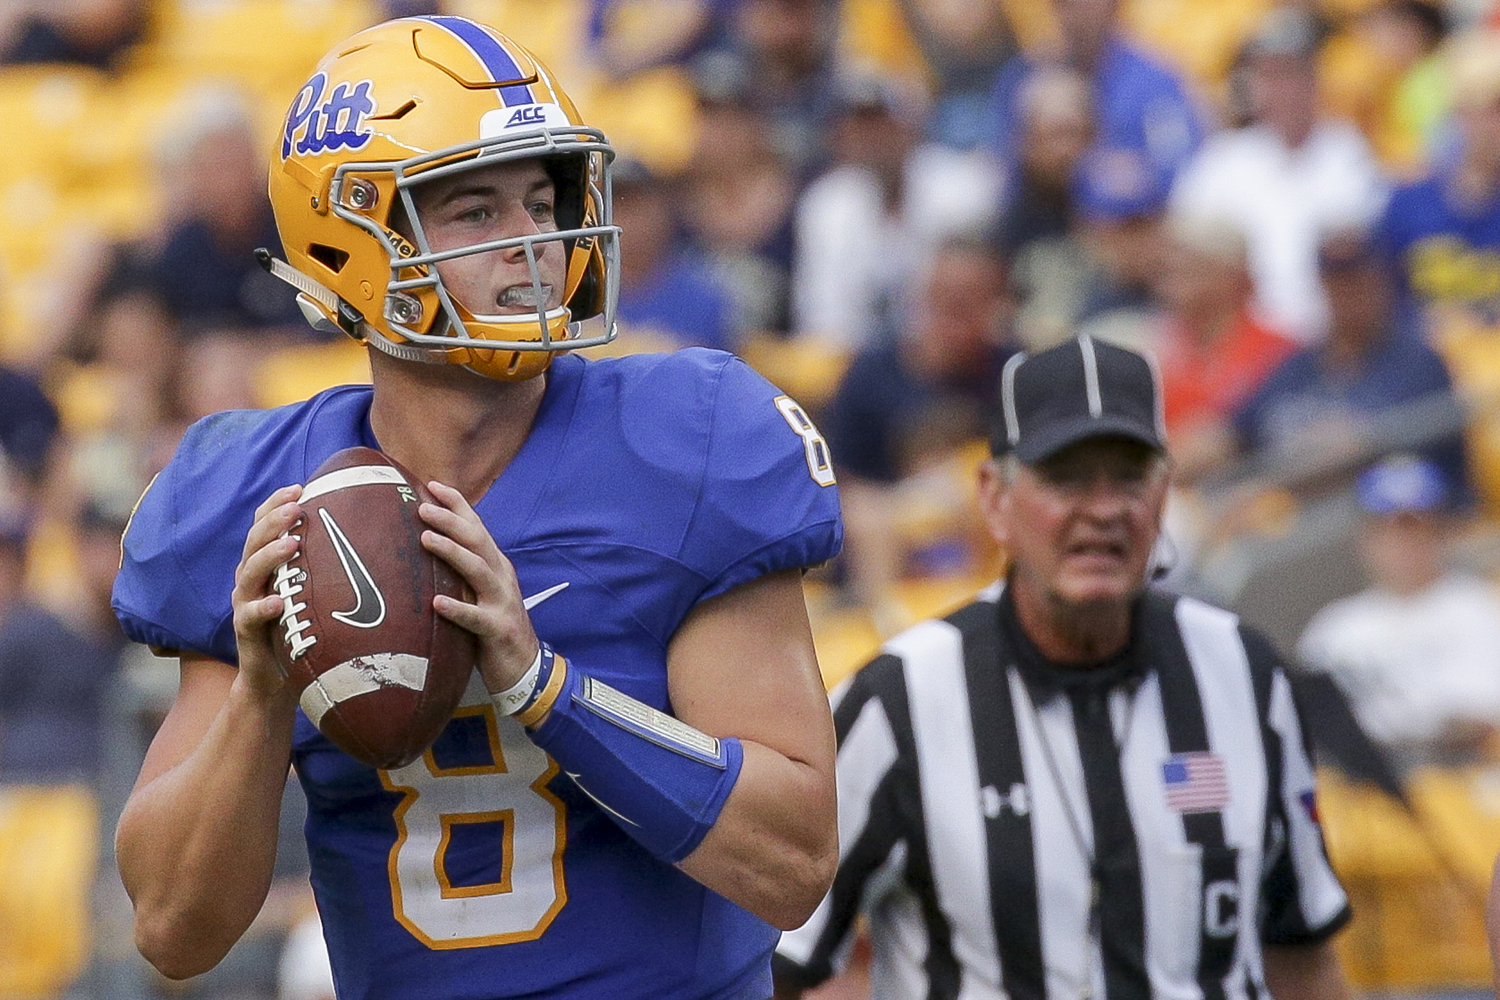 The 61-year-old Whipple, who brings almost 40 years of coaching experience to the table, will look to mentor quarterback Kenny Pickett (pictured) in an effort to revitalize Pitt's 92nd-ranked offense.